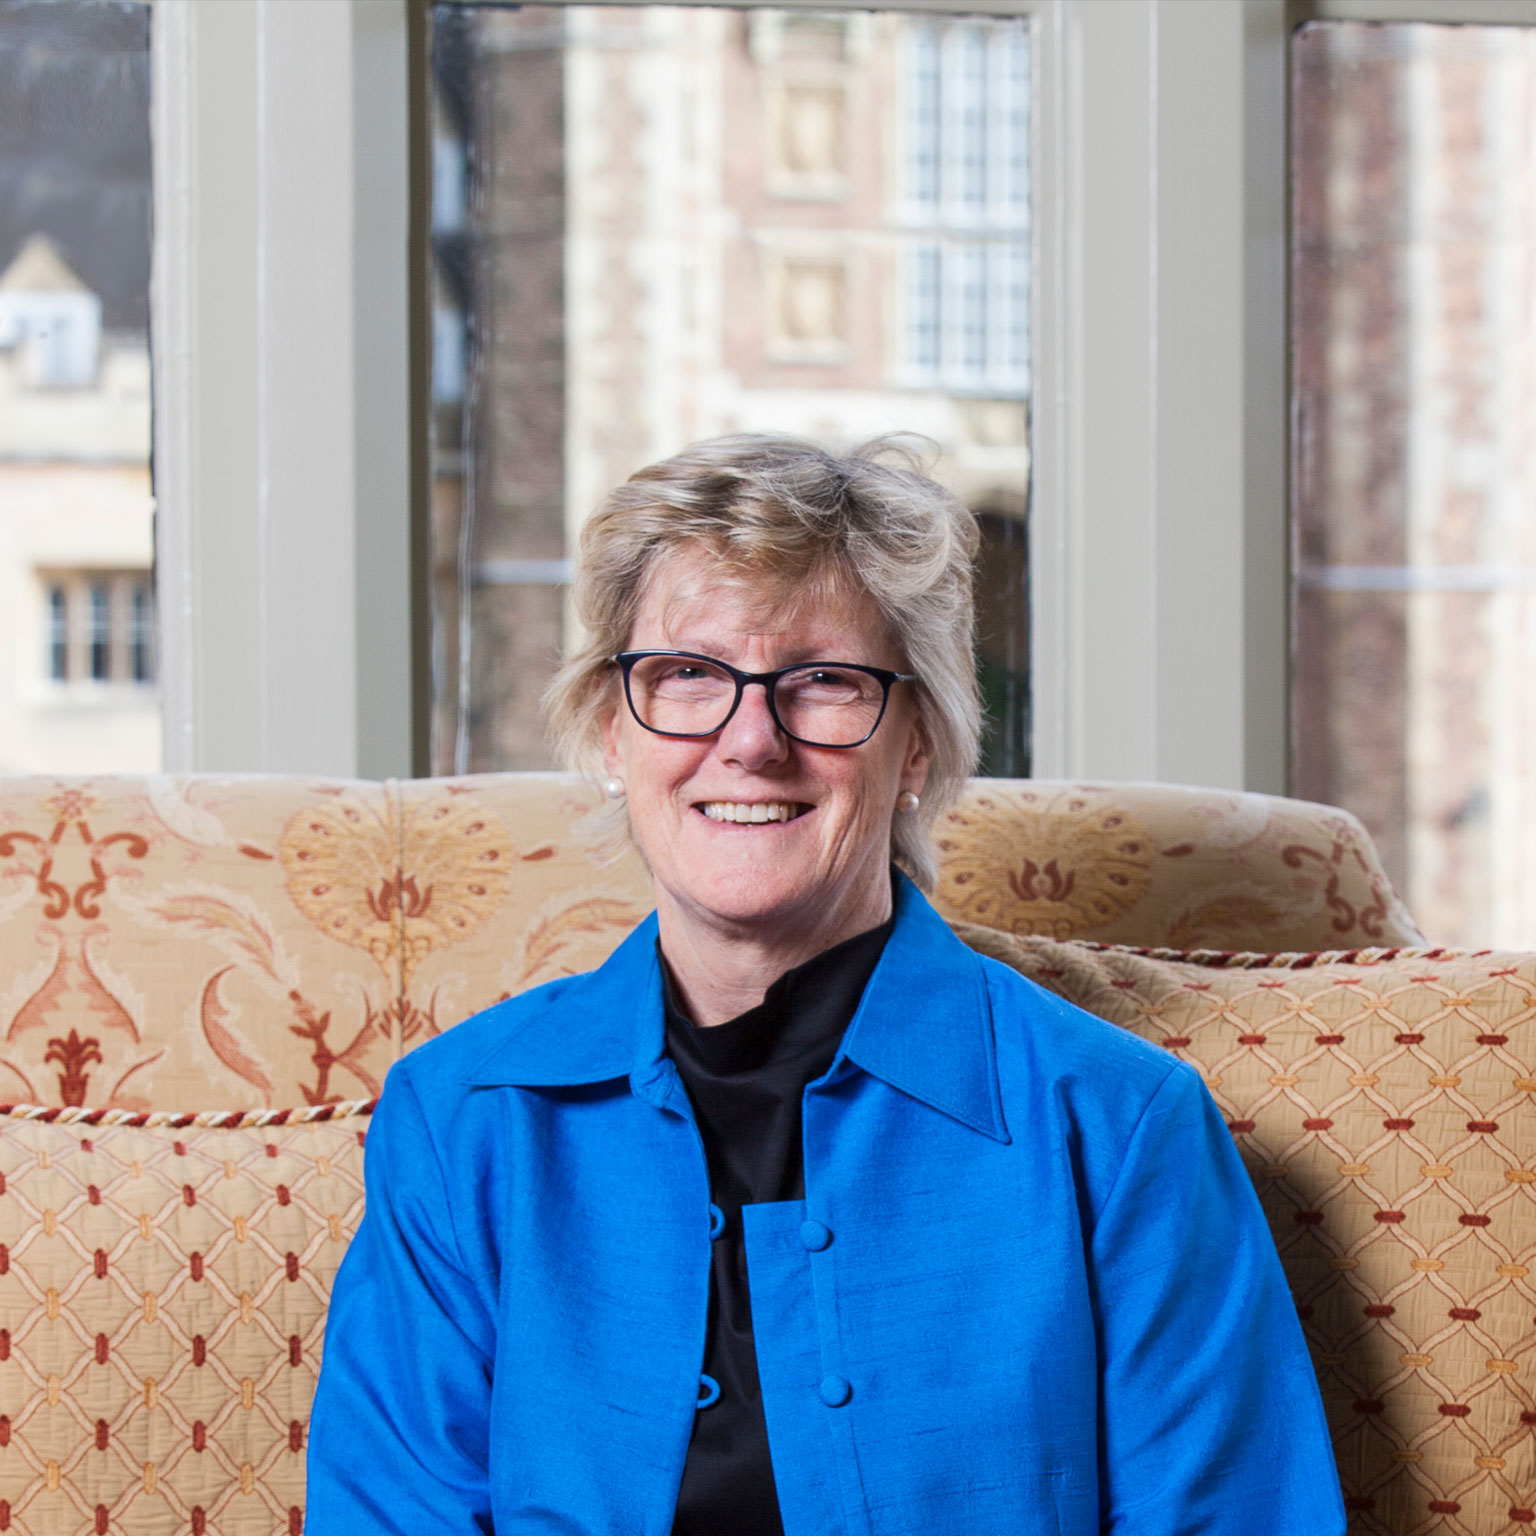 preventing-global-health-crises:-an-interview-with-dame-sally-davies